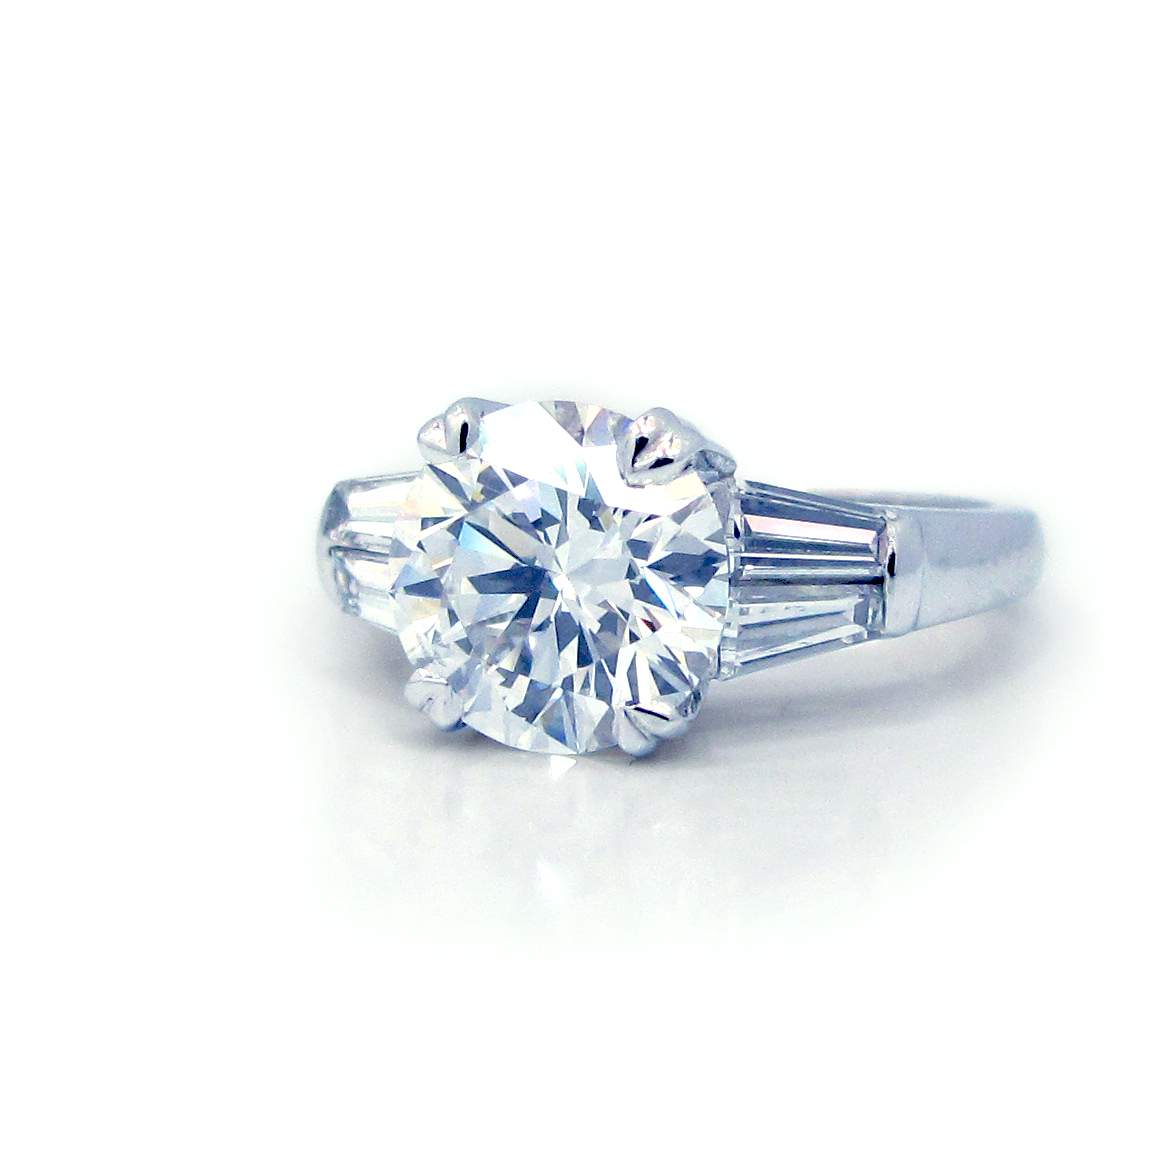 ring product diamond engagement baguette rings webstore white samuel gold d h cluster number